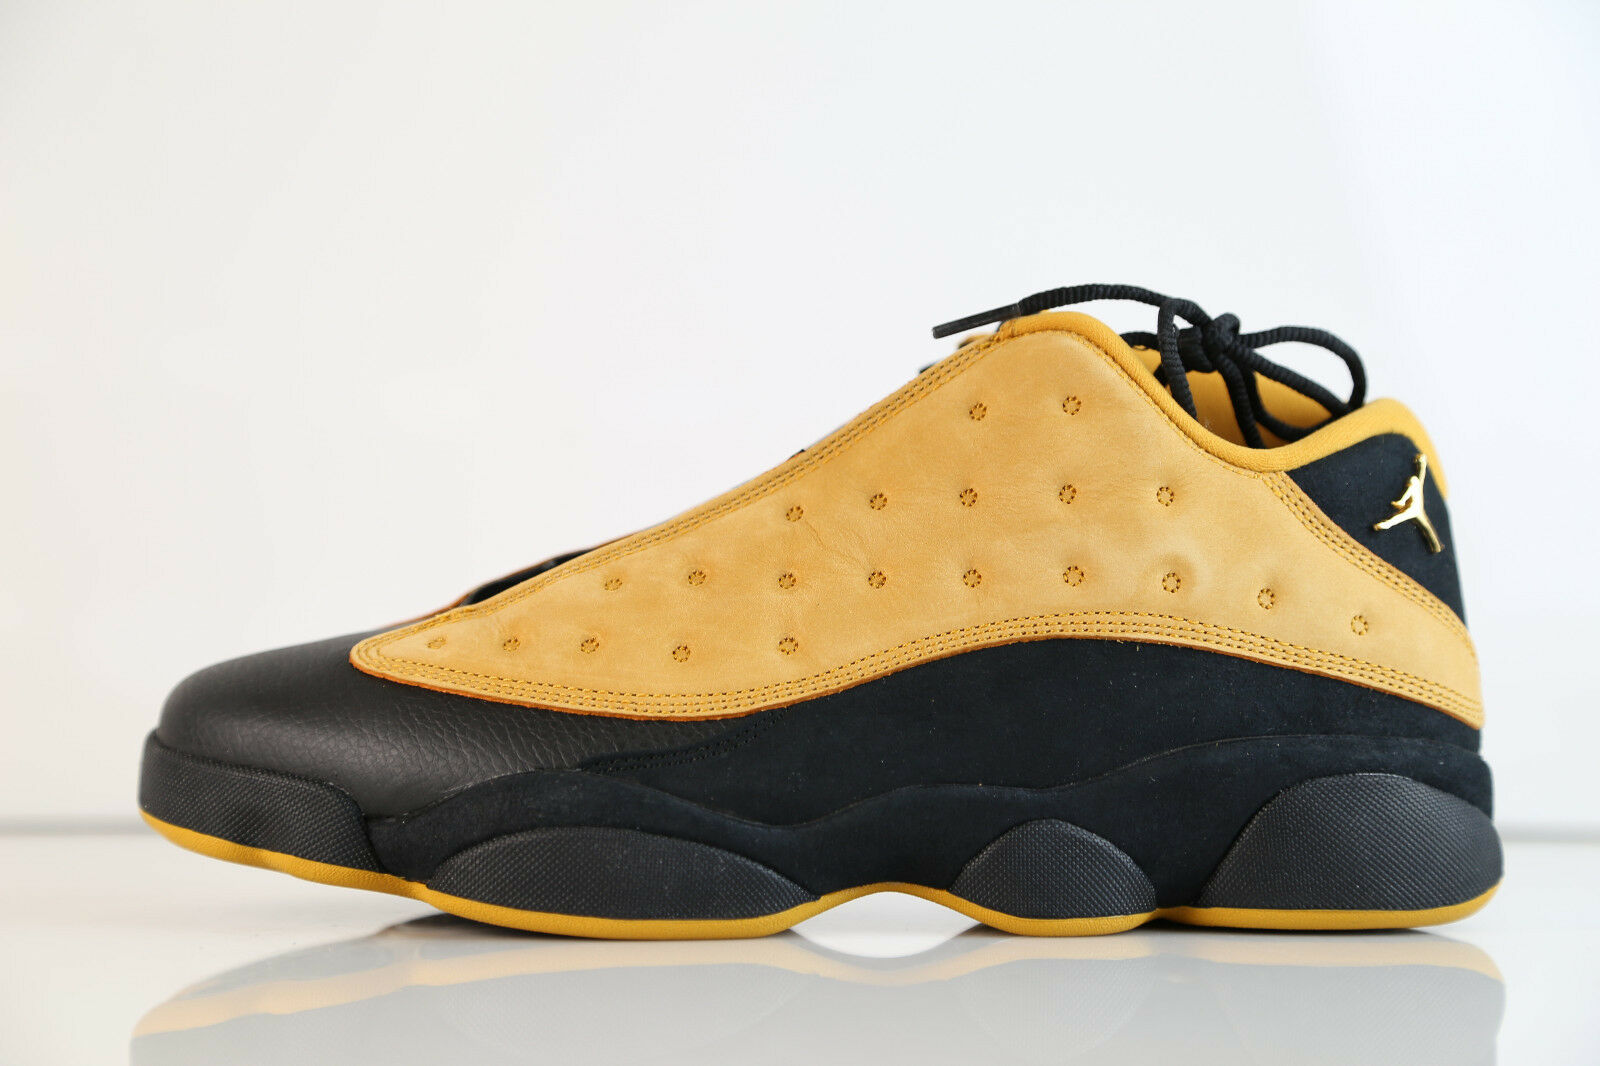 Nike Air Jordan Retro 13 Low Chutney Black 310810-022  8-14 IN STOCK 3 11 1